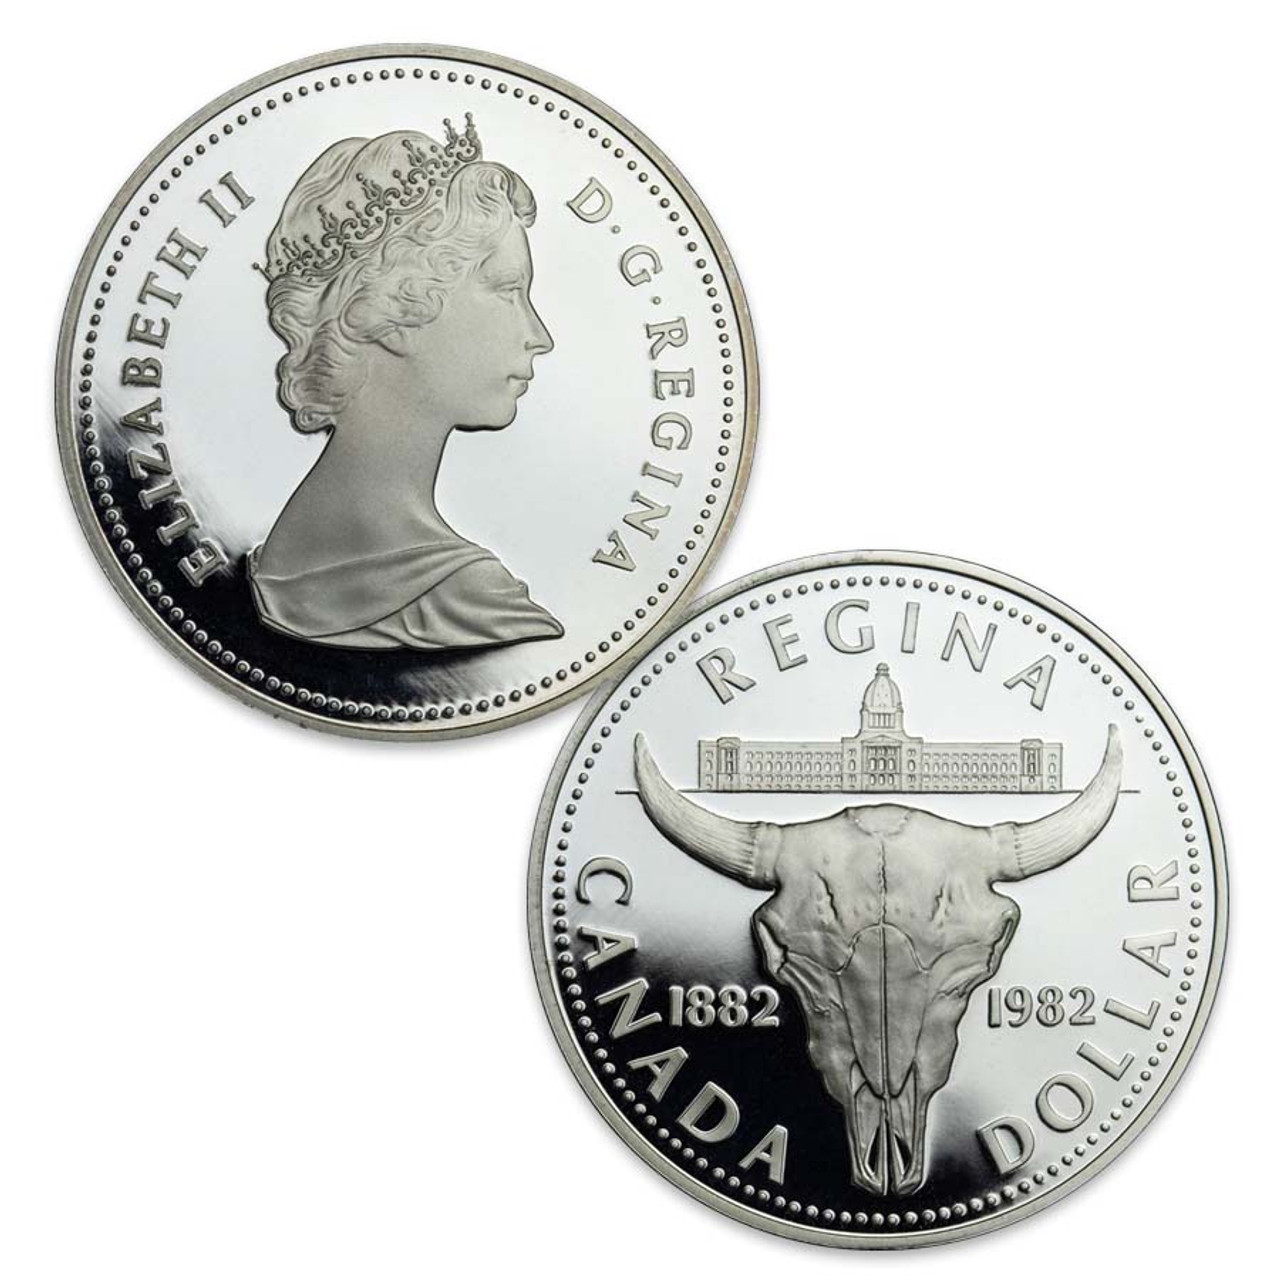 Canada 1982 Bison Silver Dollar Proof Image 1